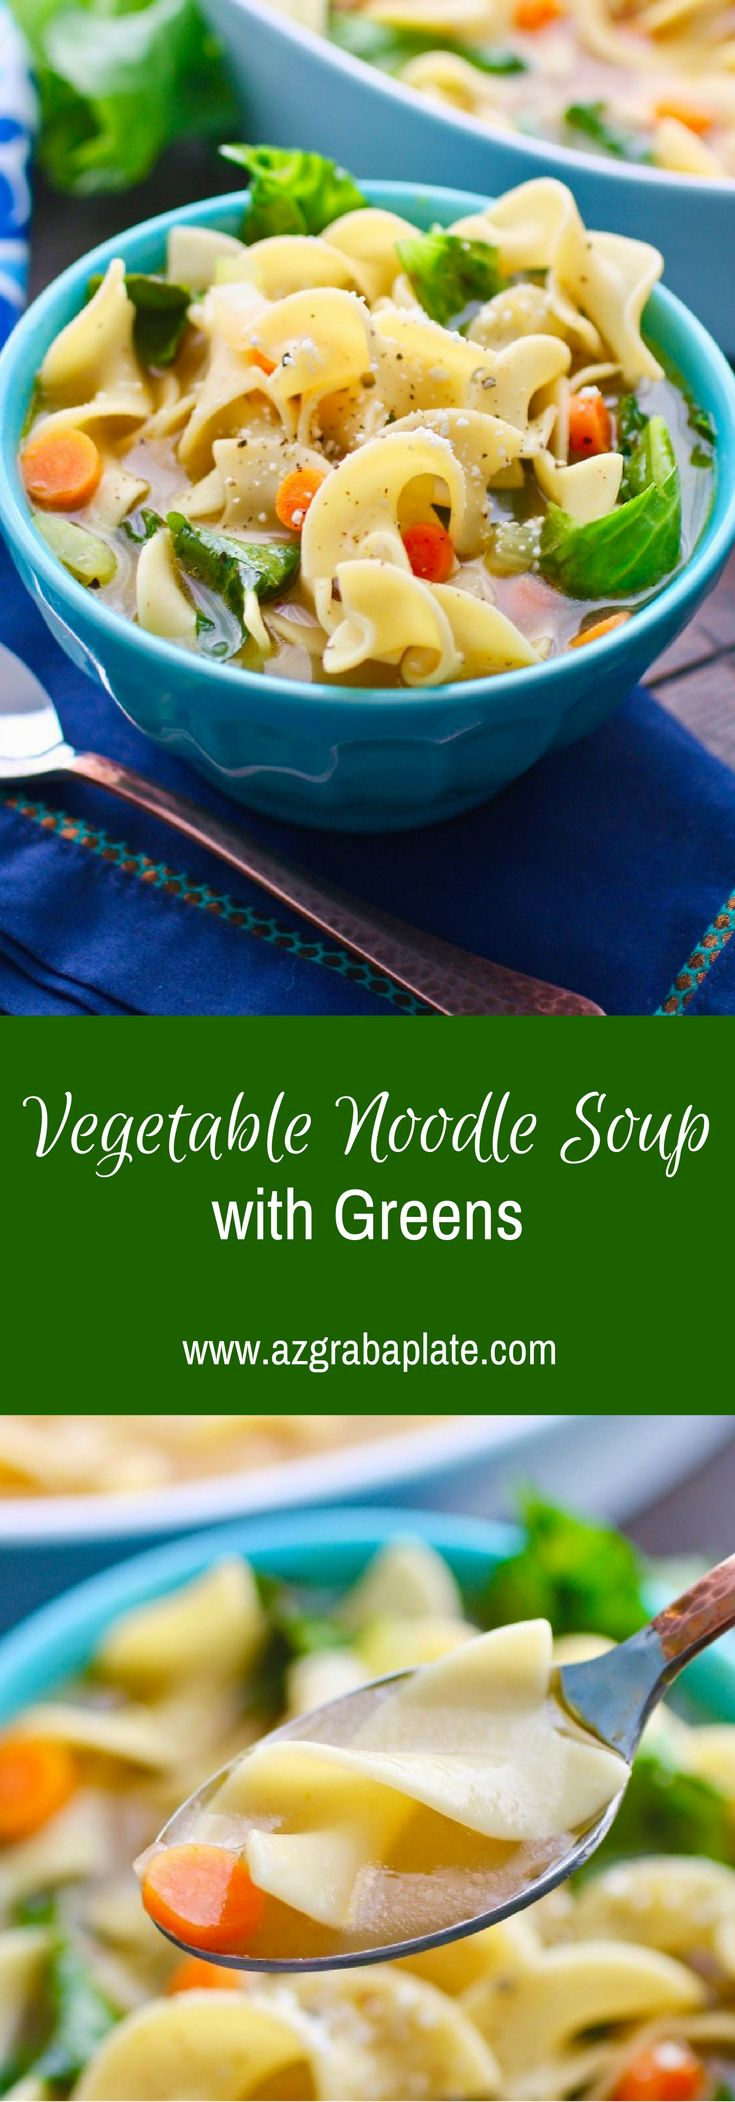 Under the weather? If you are, a bowl of Vegetable Noodle Soup with Greens can help. And if you're well, you'll still enjoy this easy-to-make, tasty soup!